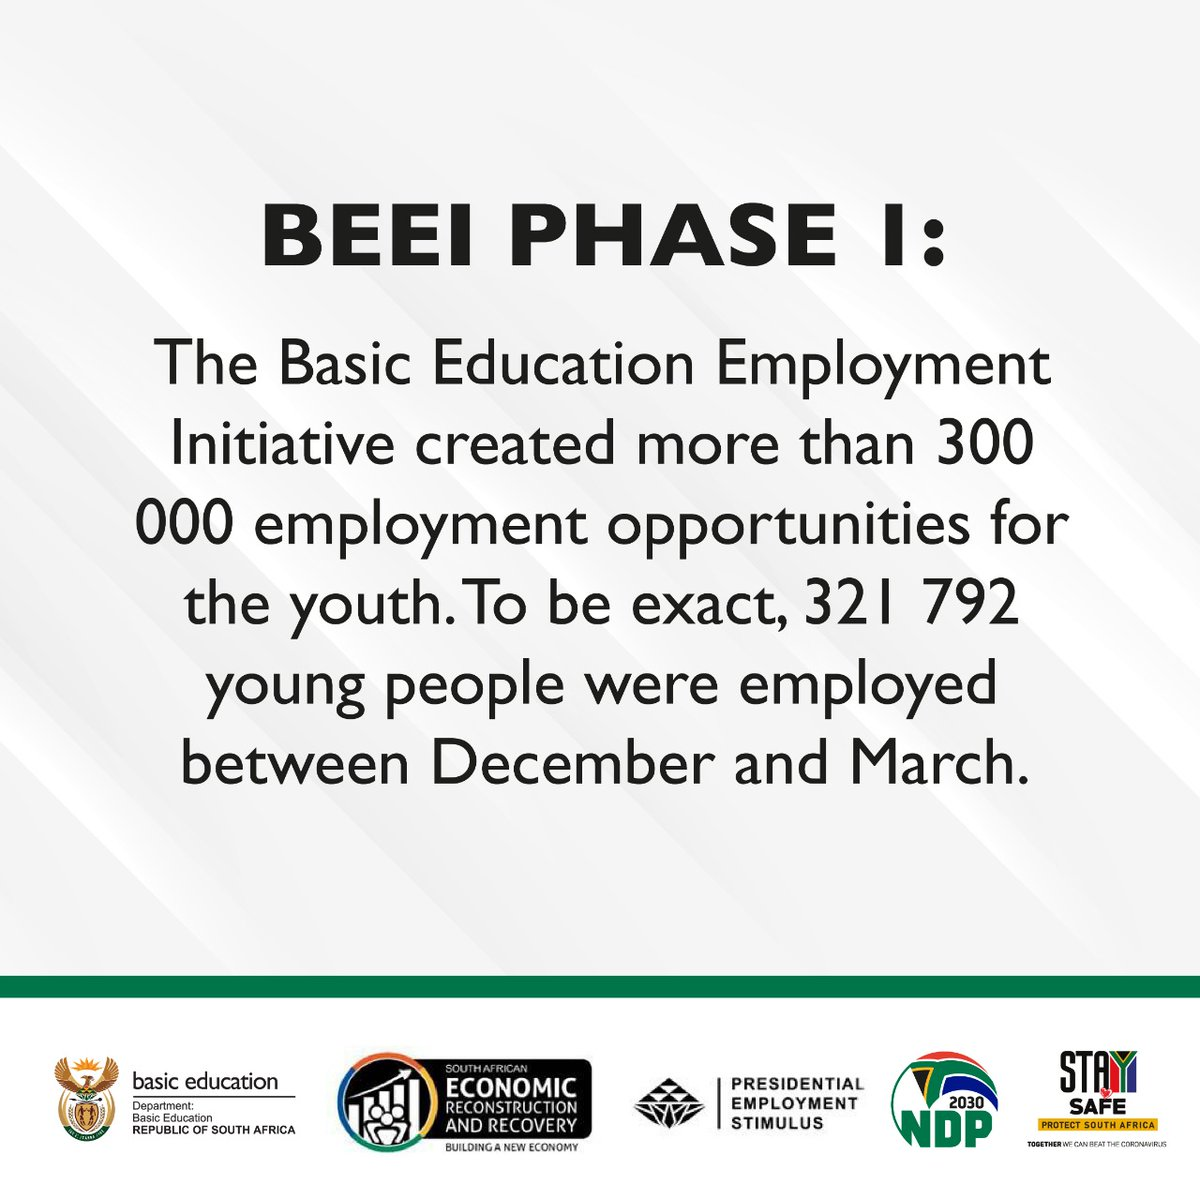 """Dep. Basic Education on Twitter: """"The first phase of the Basic Education  Employment Initiative was a success. The department employed more young  people than expected. #BEEI @ElijahMhlanga @ReginahMhaule @HubertMweli…  https://t.co/9WwMSzfcjB"""""""